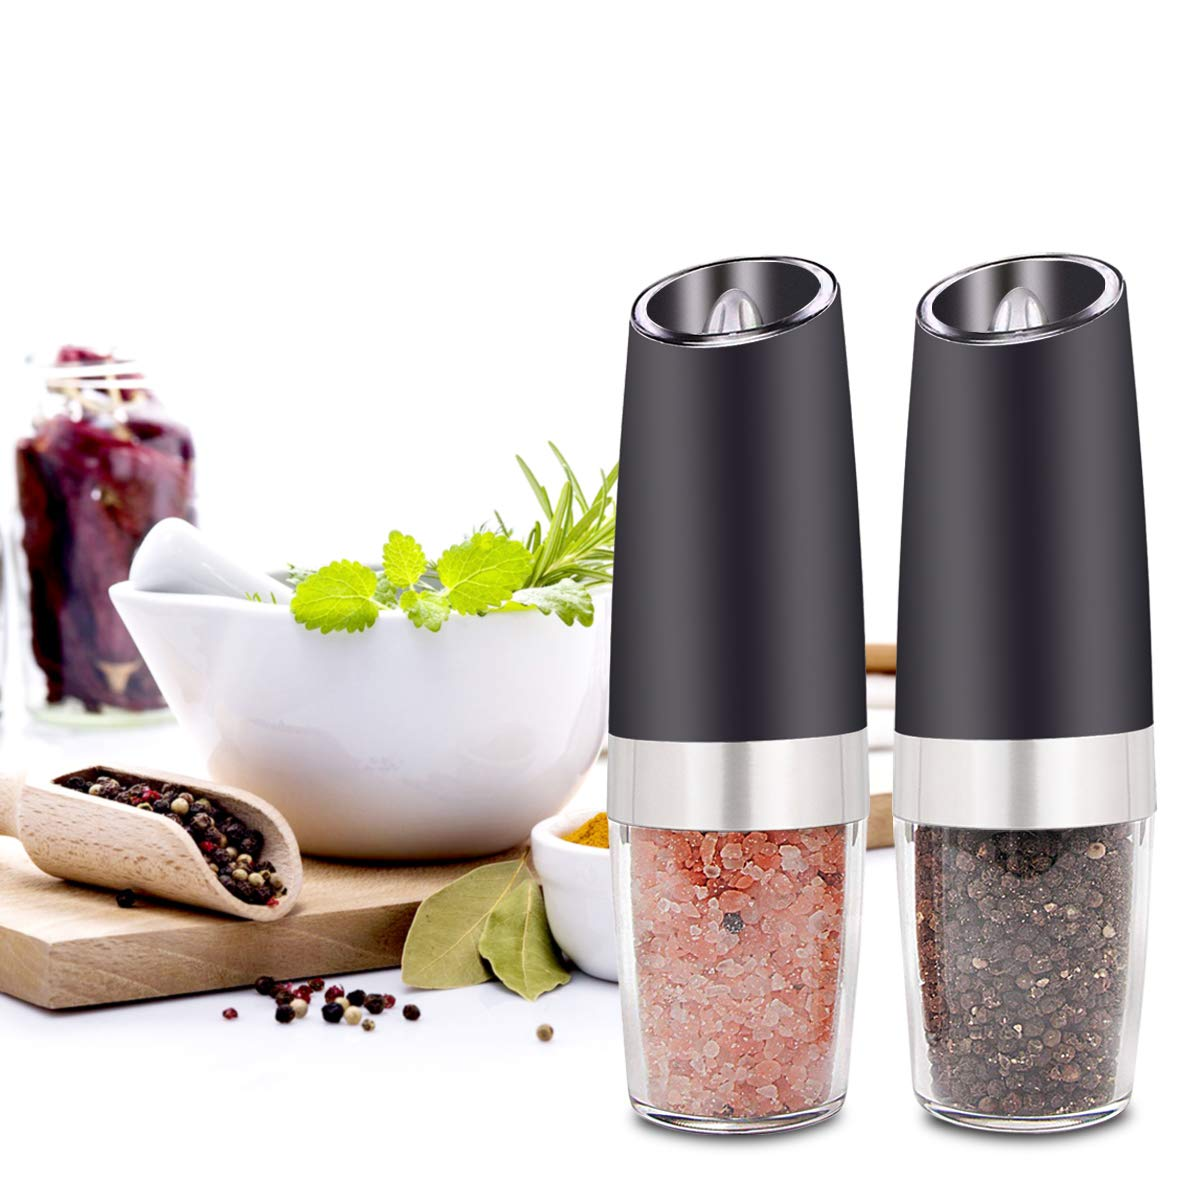 Battery Powered Pepper Mill and Salt Mill,High Capacity,Adjustable Grind Coarseness with Blue LED Light Bencse Gravity Electric Salt and Pepper Grinder Sets